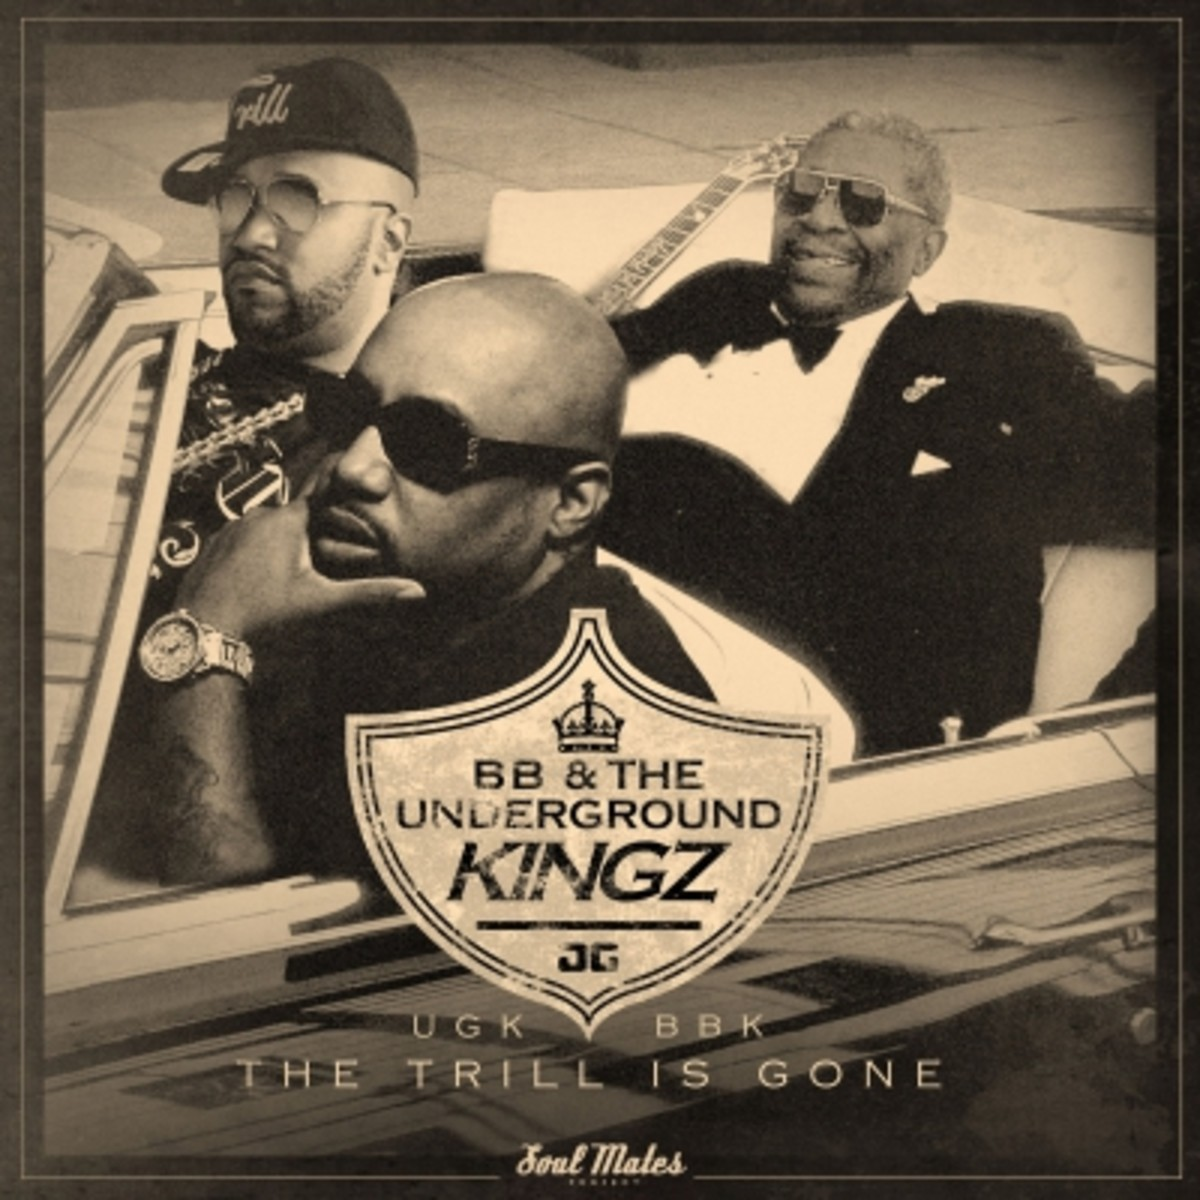 bb-the-underground-kingz-the-trill-is-gone.jpg